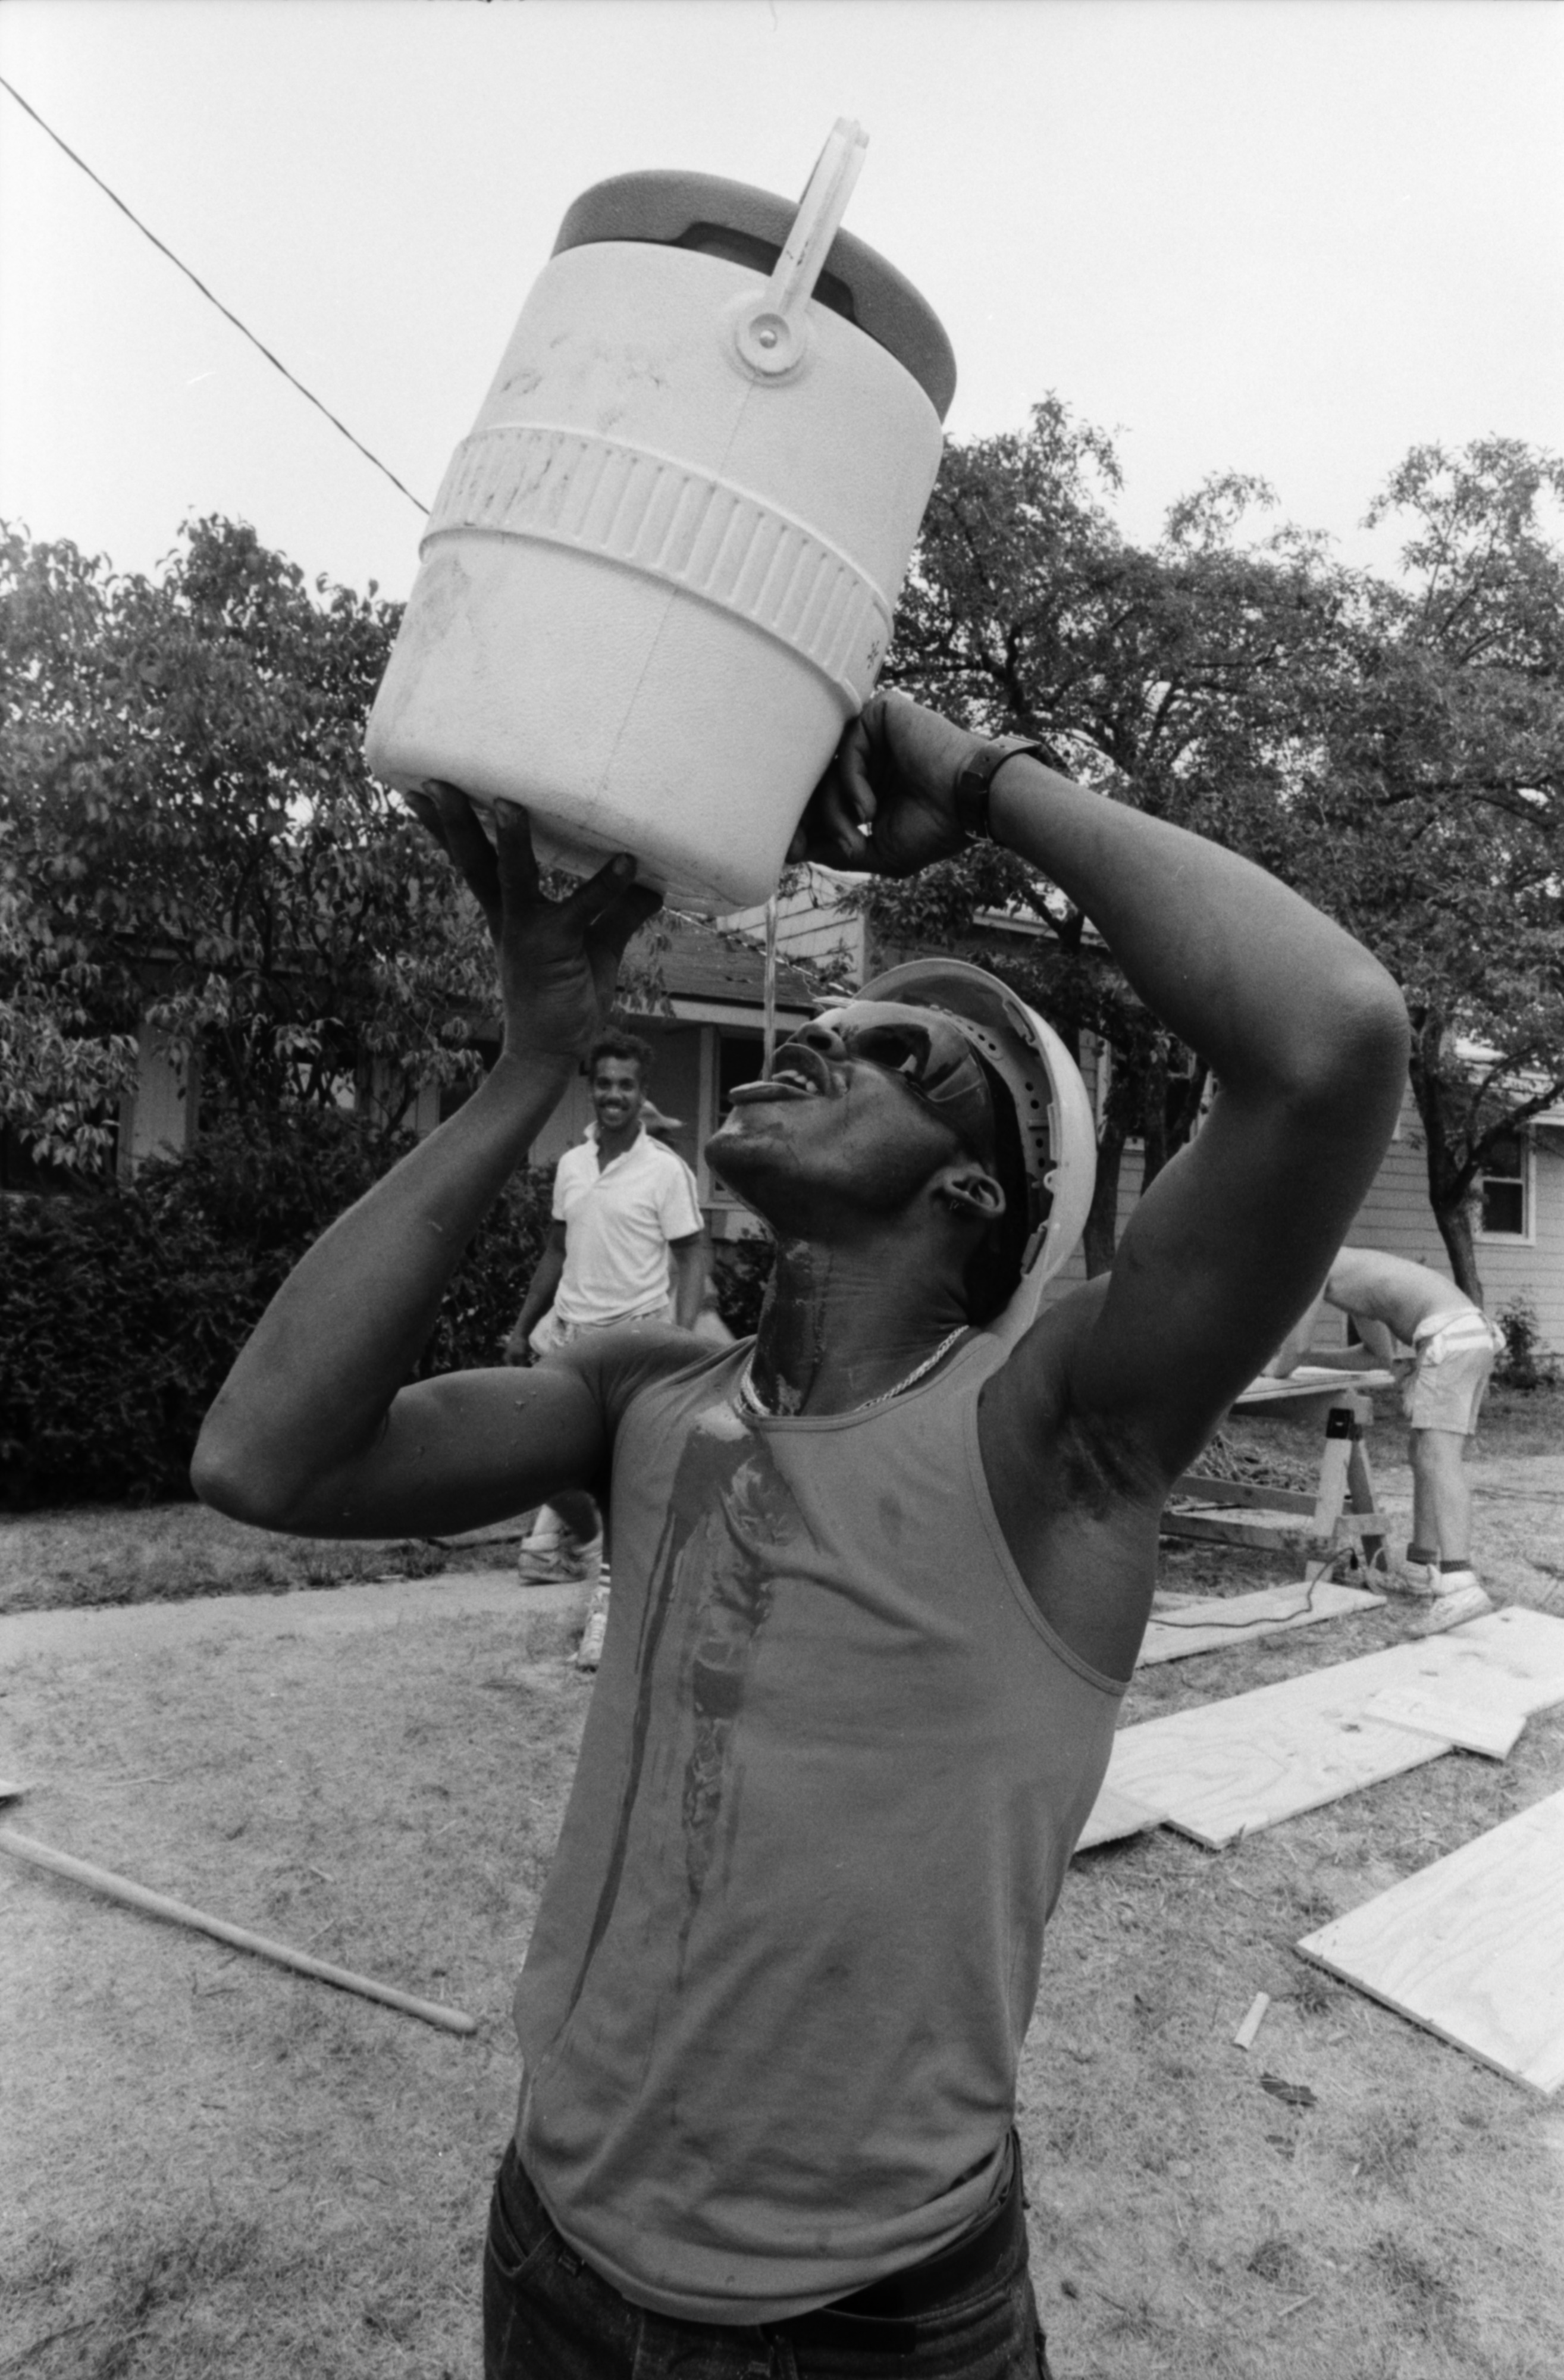 Niles Johnson Takes a Water Break While Working on Construction Pittsfield Village, August 1987 image